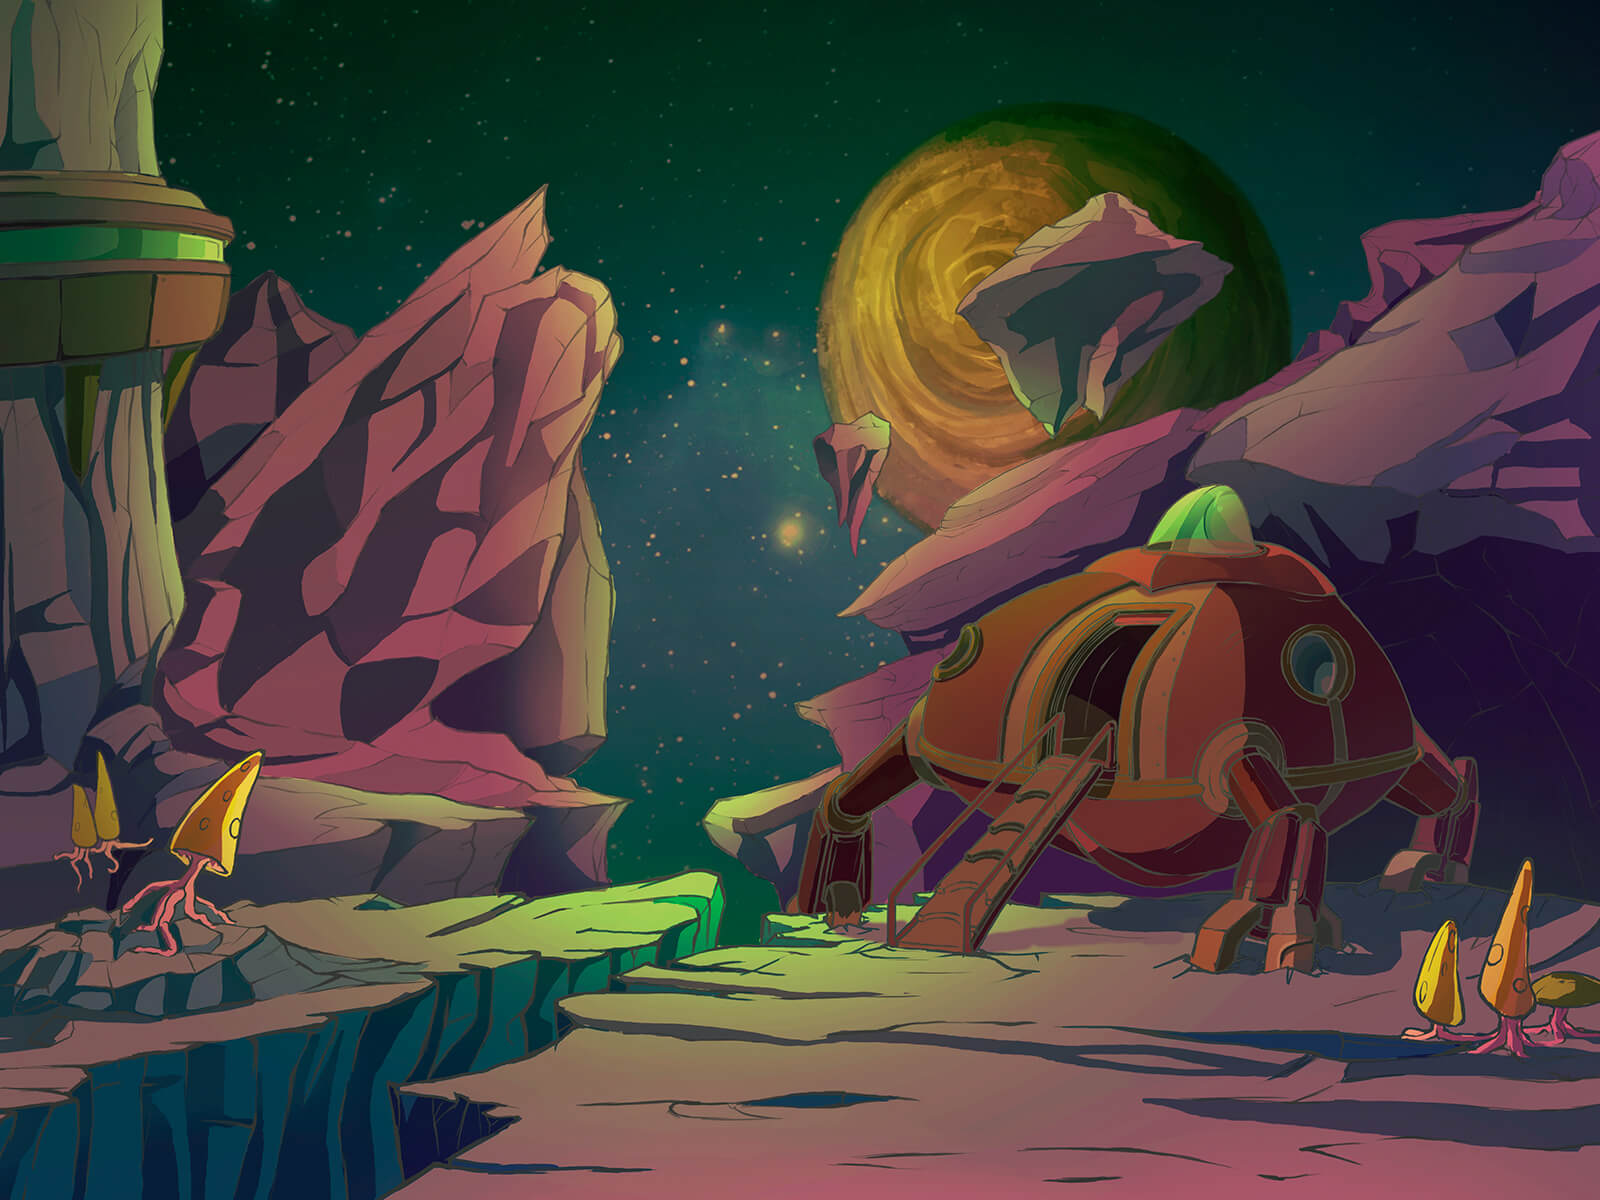 Rocky alien world with strange fungi and trees dotting the landscape. A red landing vehicle has lowered a ramp nearby.